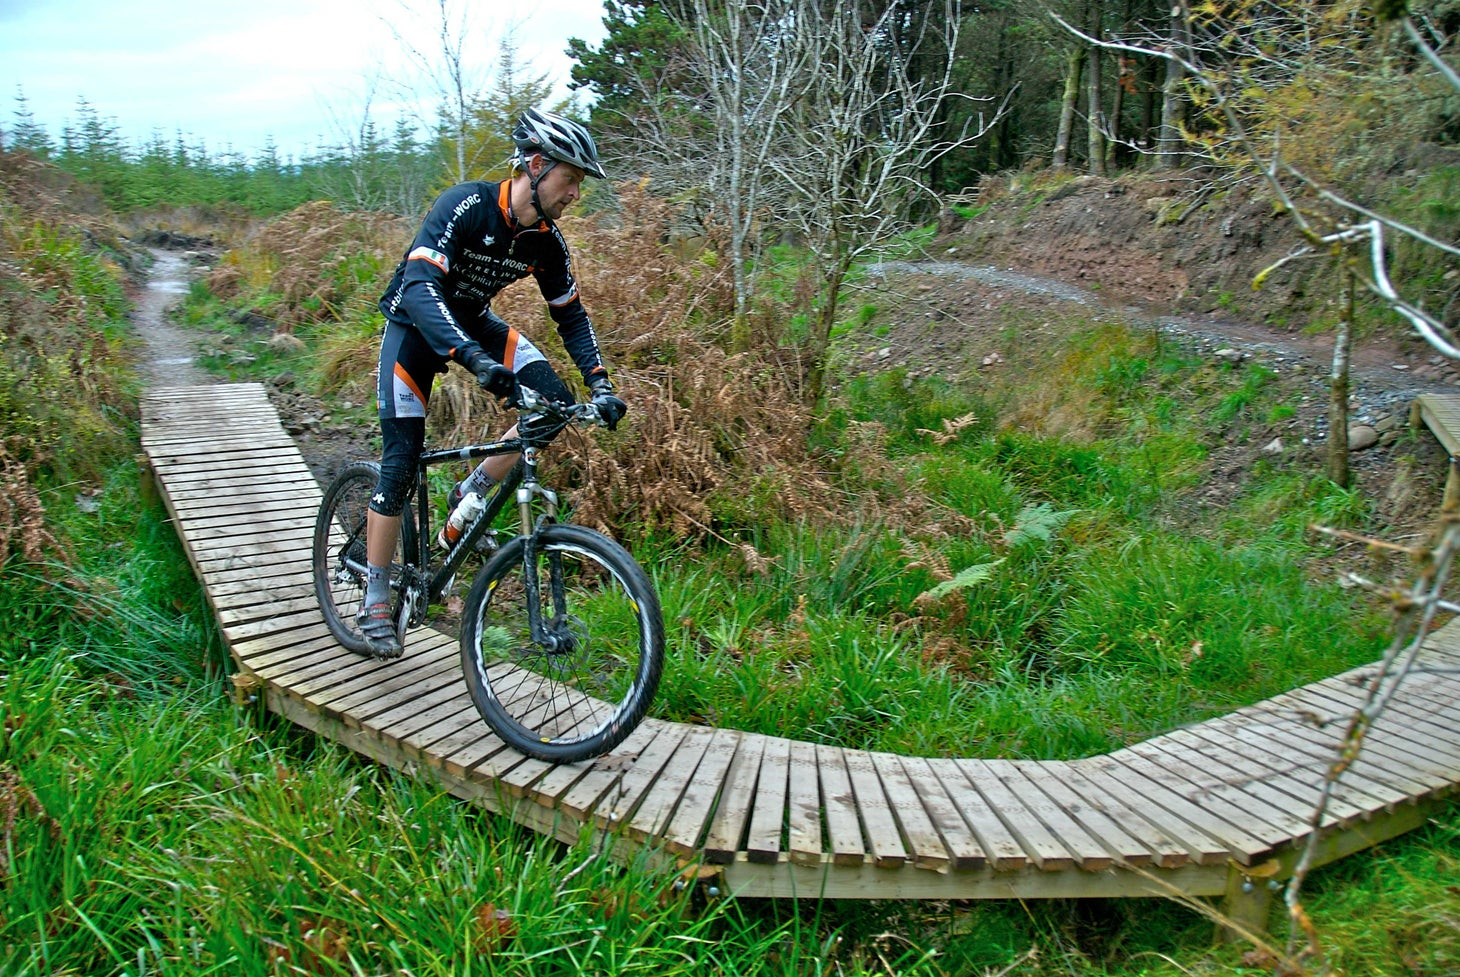 Check out the thrilling bike trails at Ballyhoura.